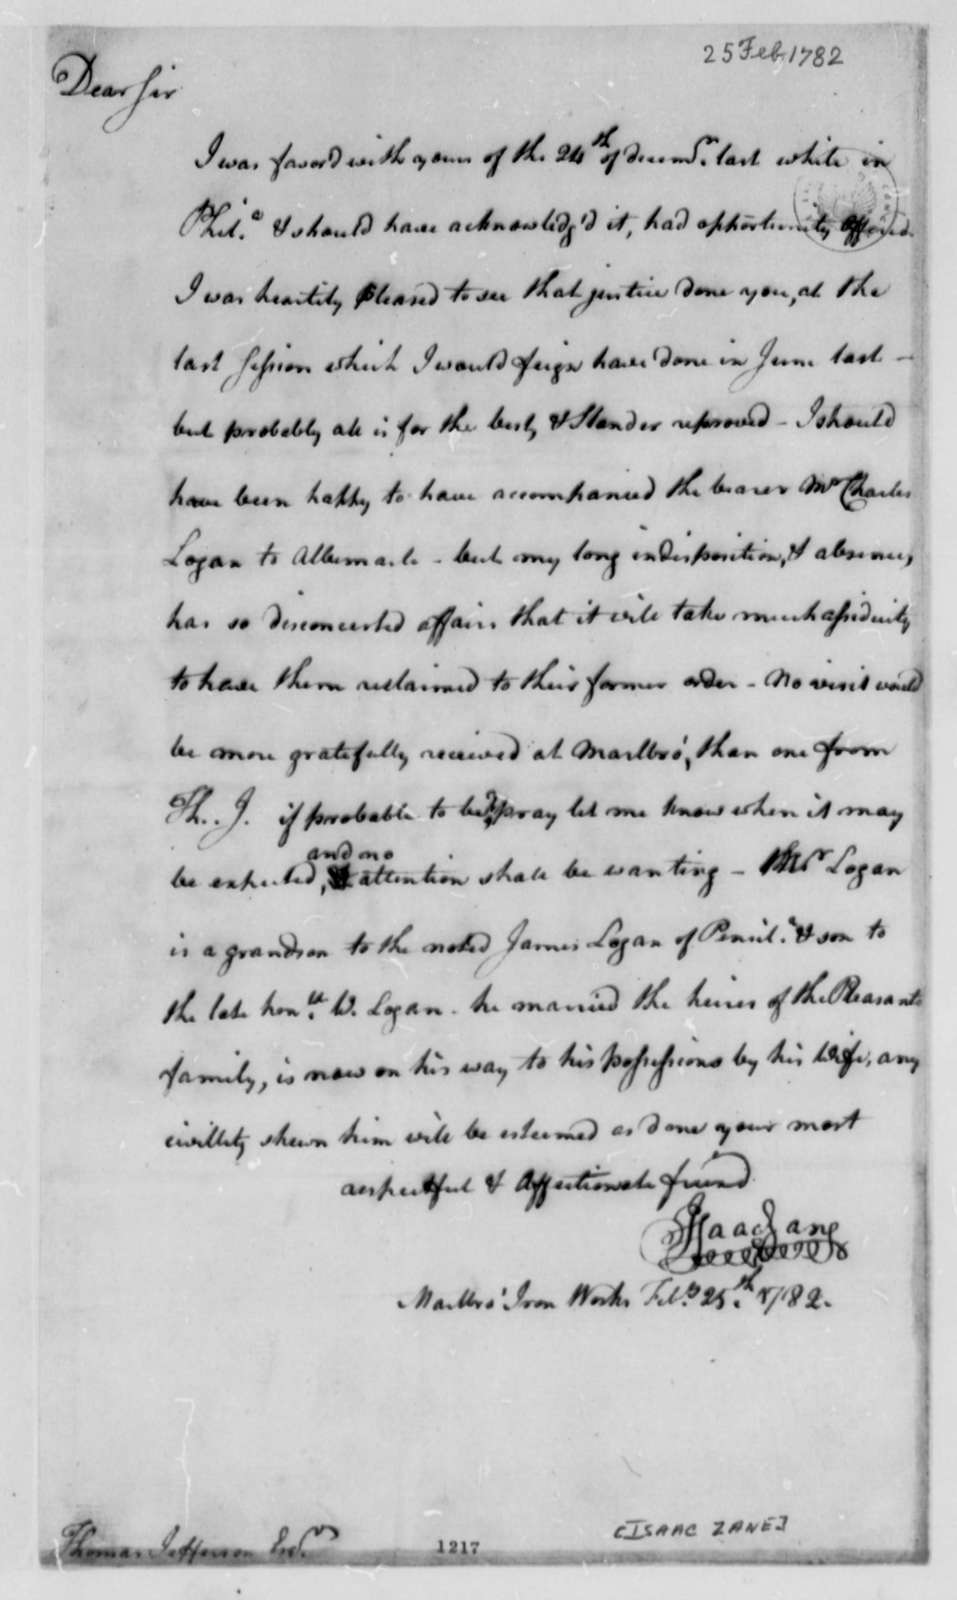 Isaac Zane to Thomas Jefferson, February 25, 1782